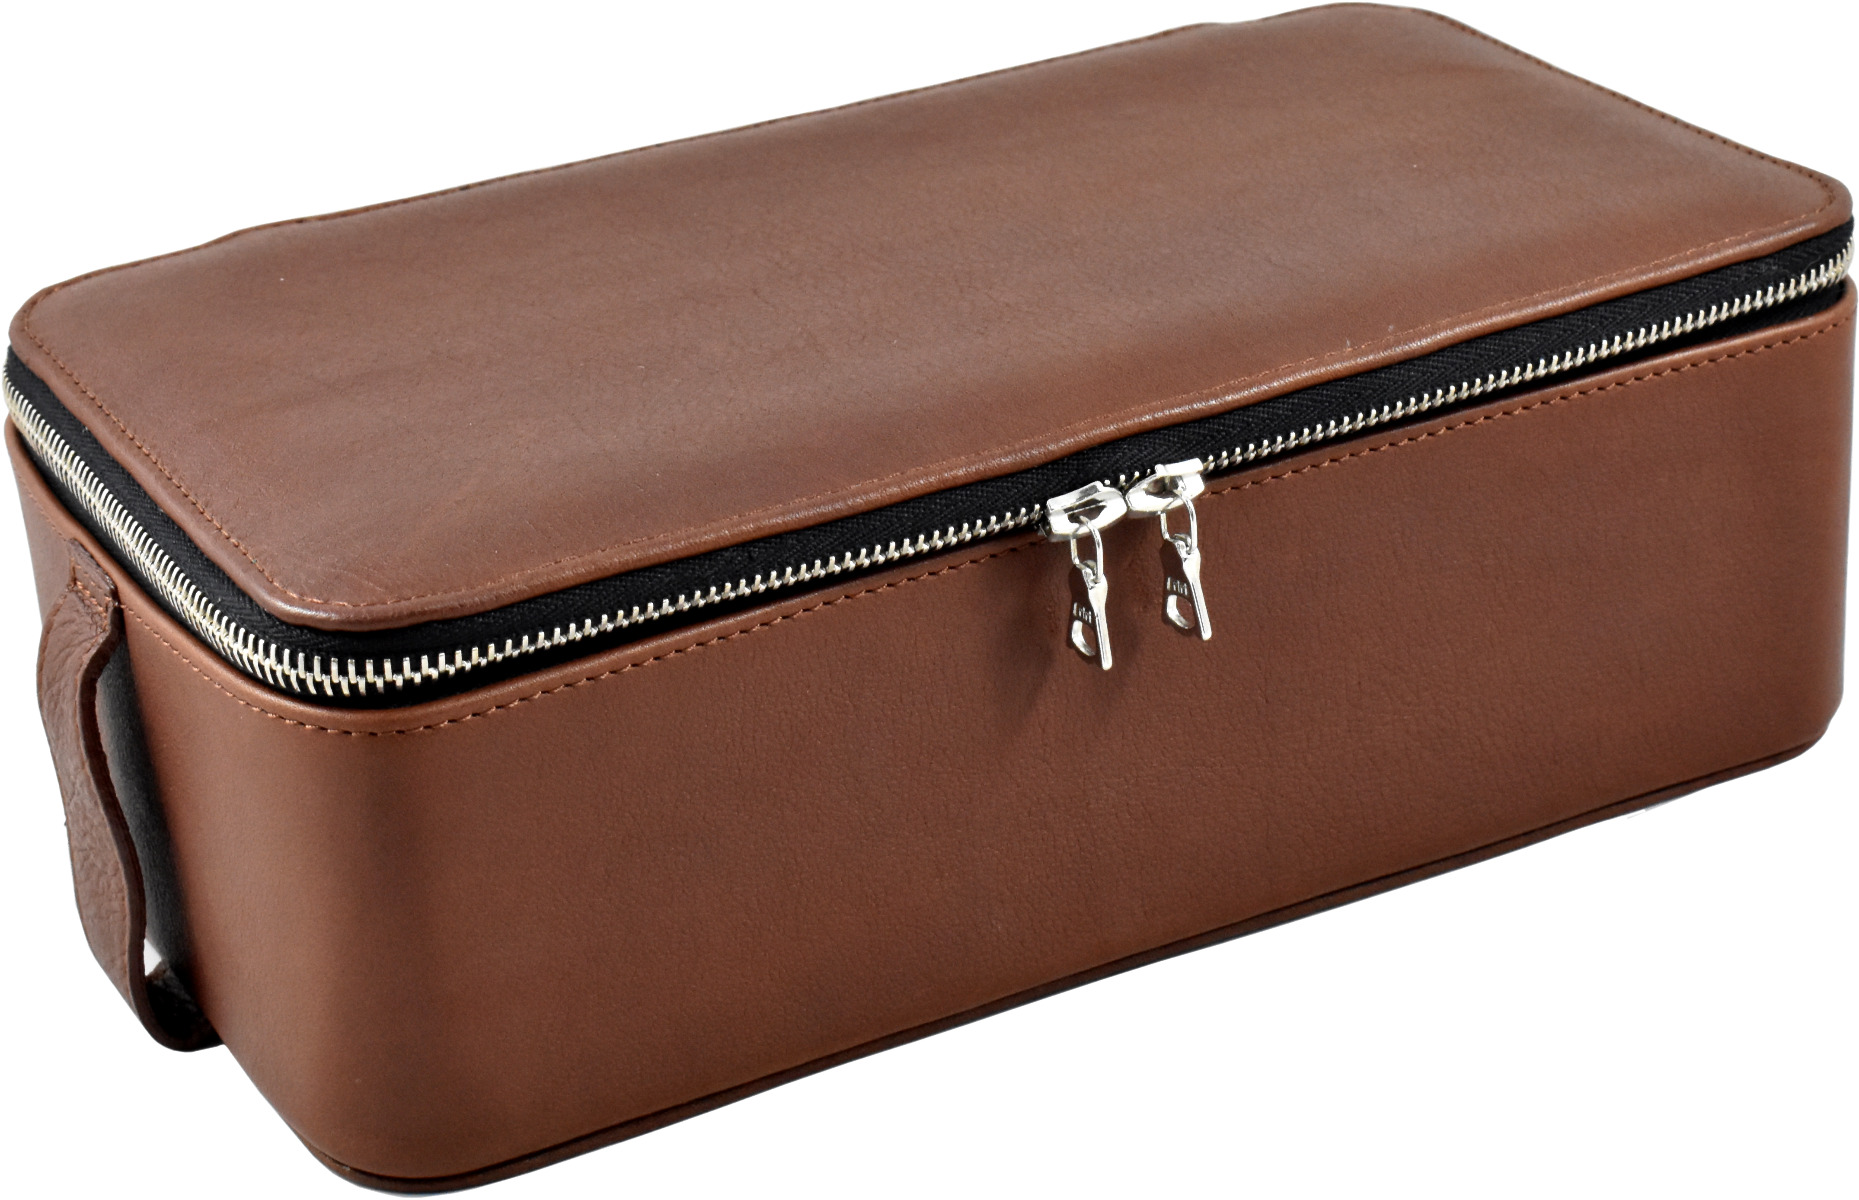 Daines And Hathaway Leather Finsbury Caramelo Box Wet Pack